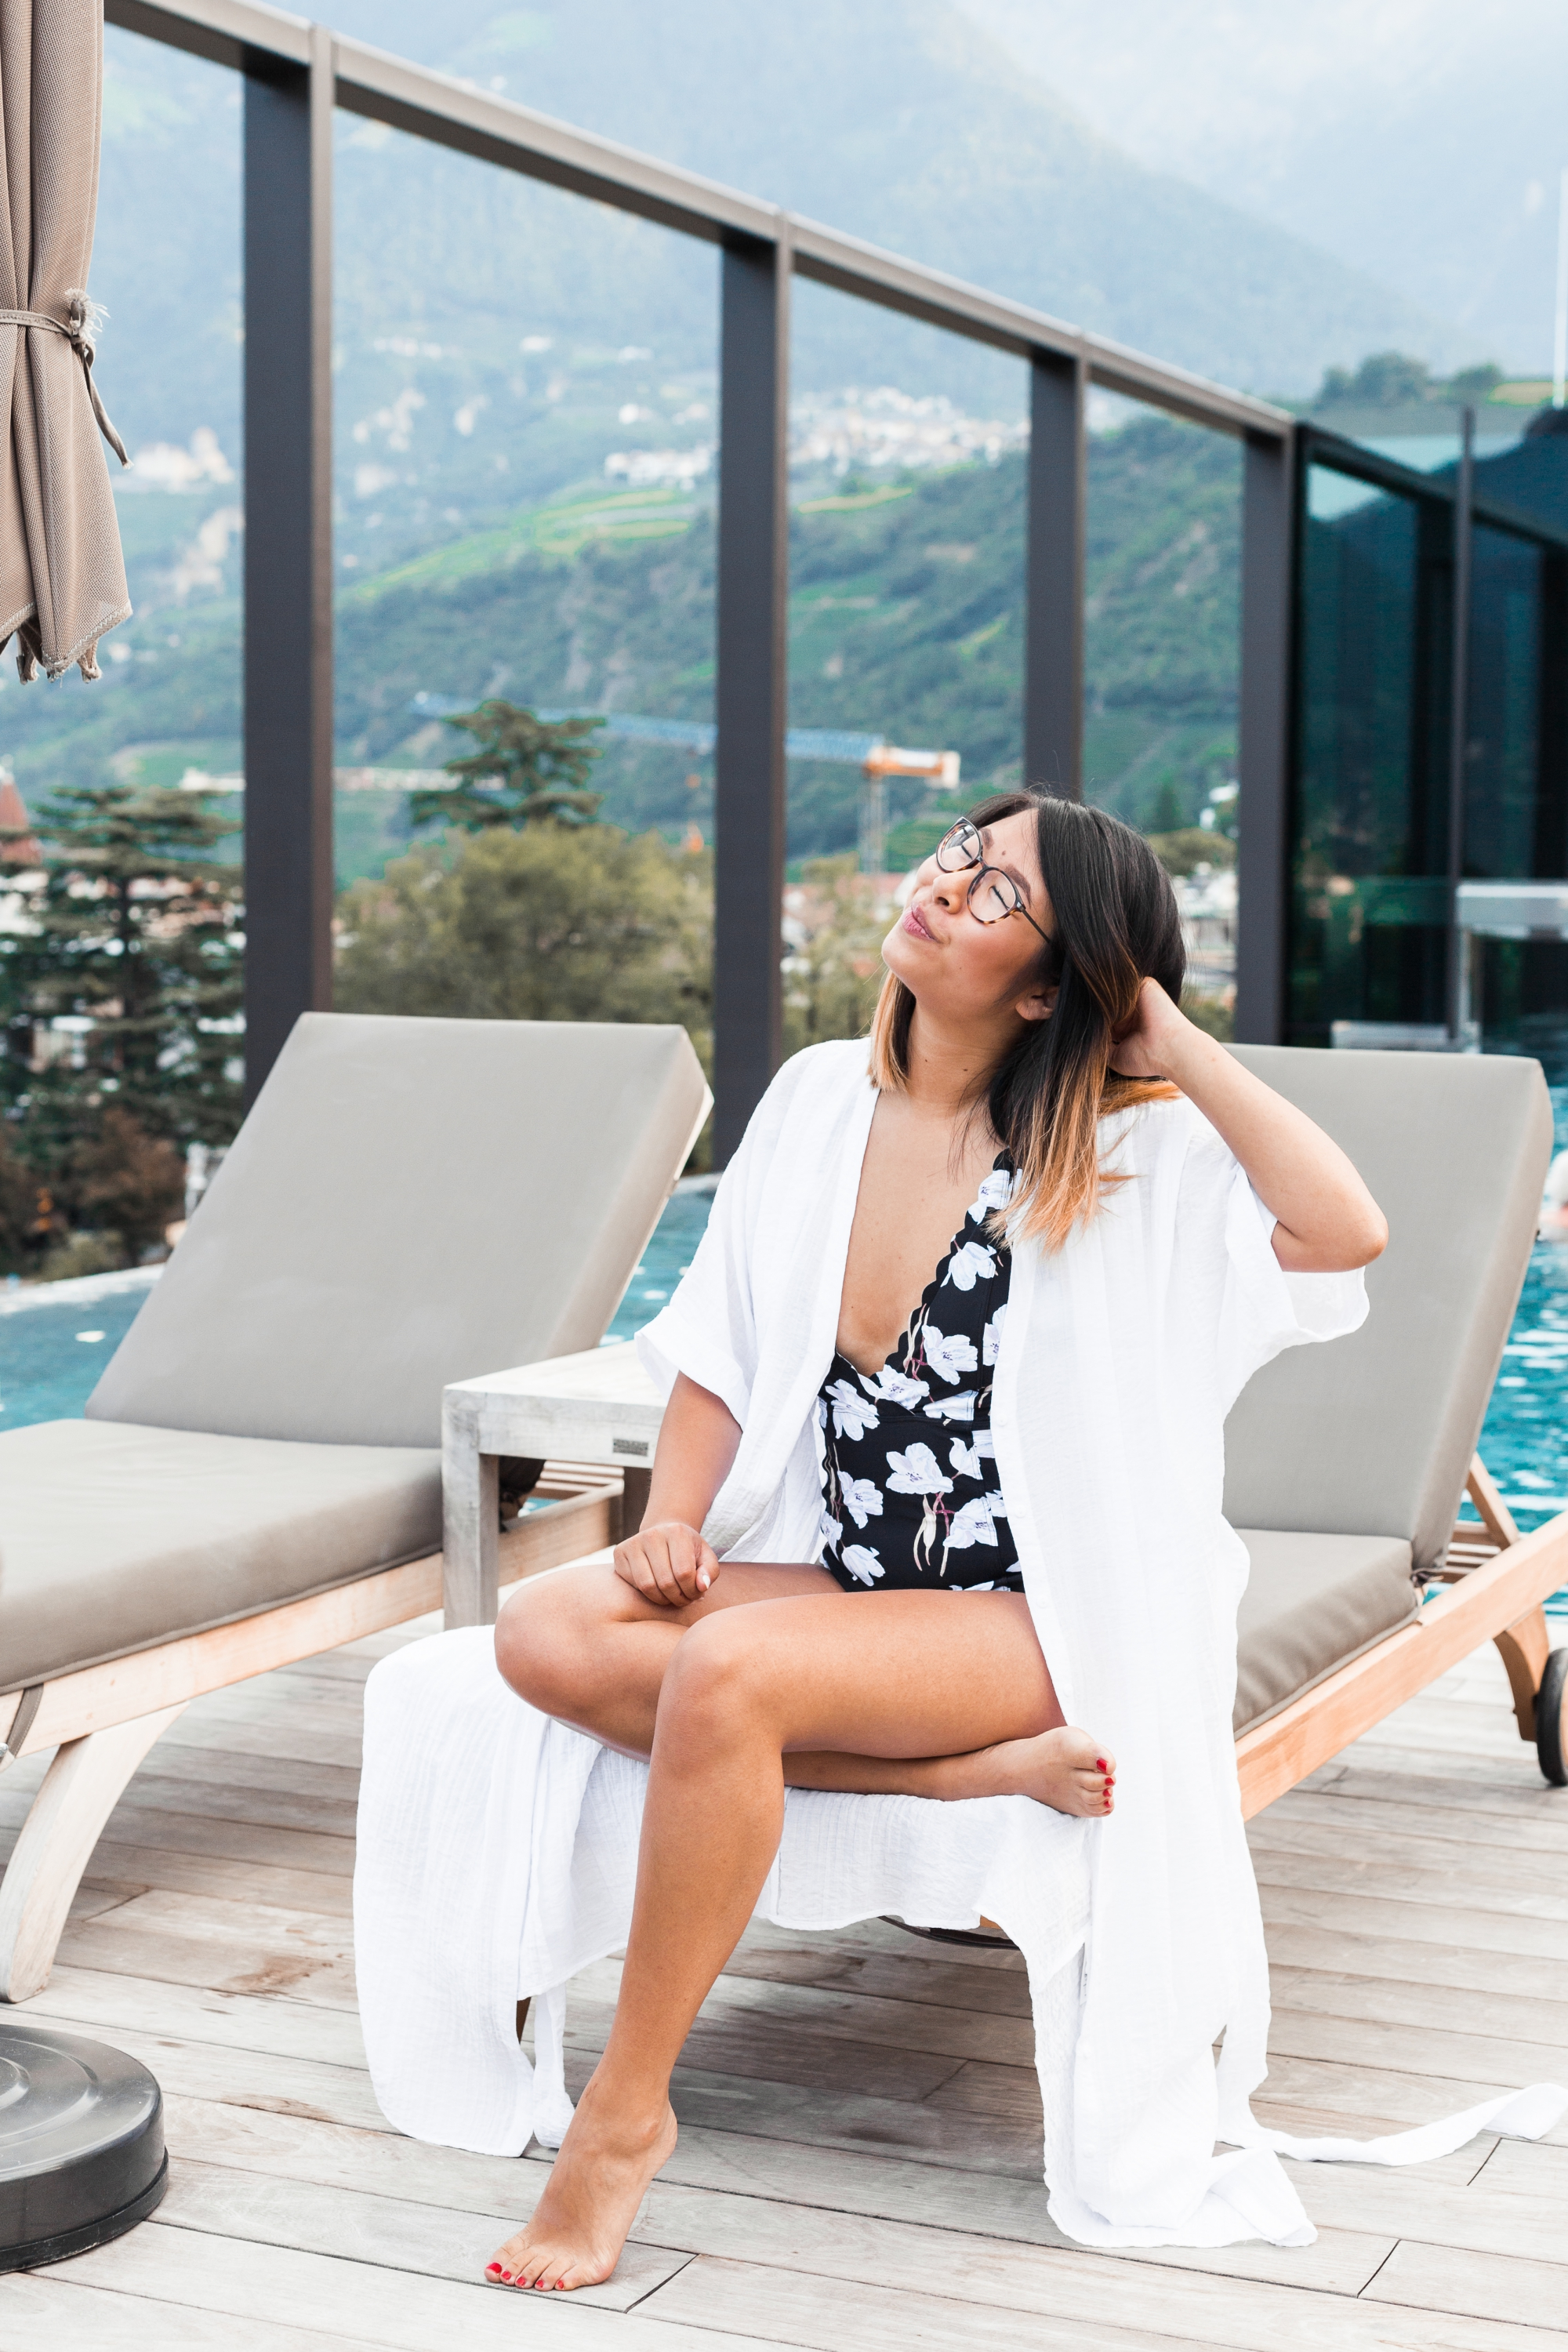 in high fashion laune | Meran Travel Guide